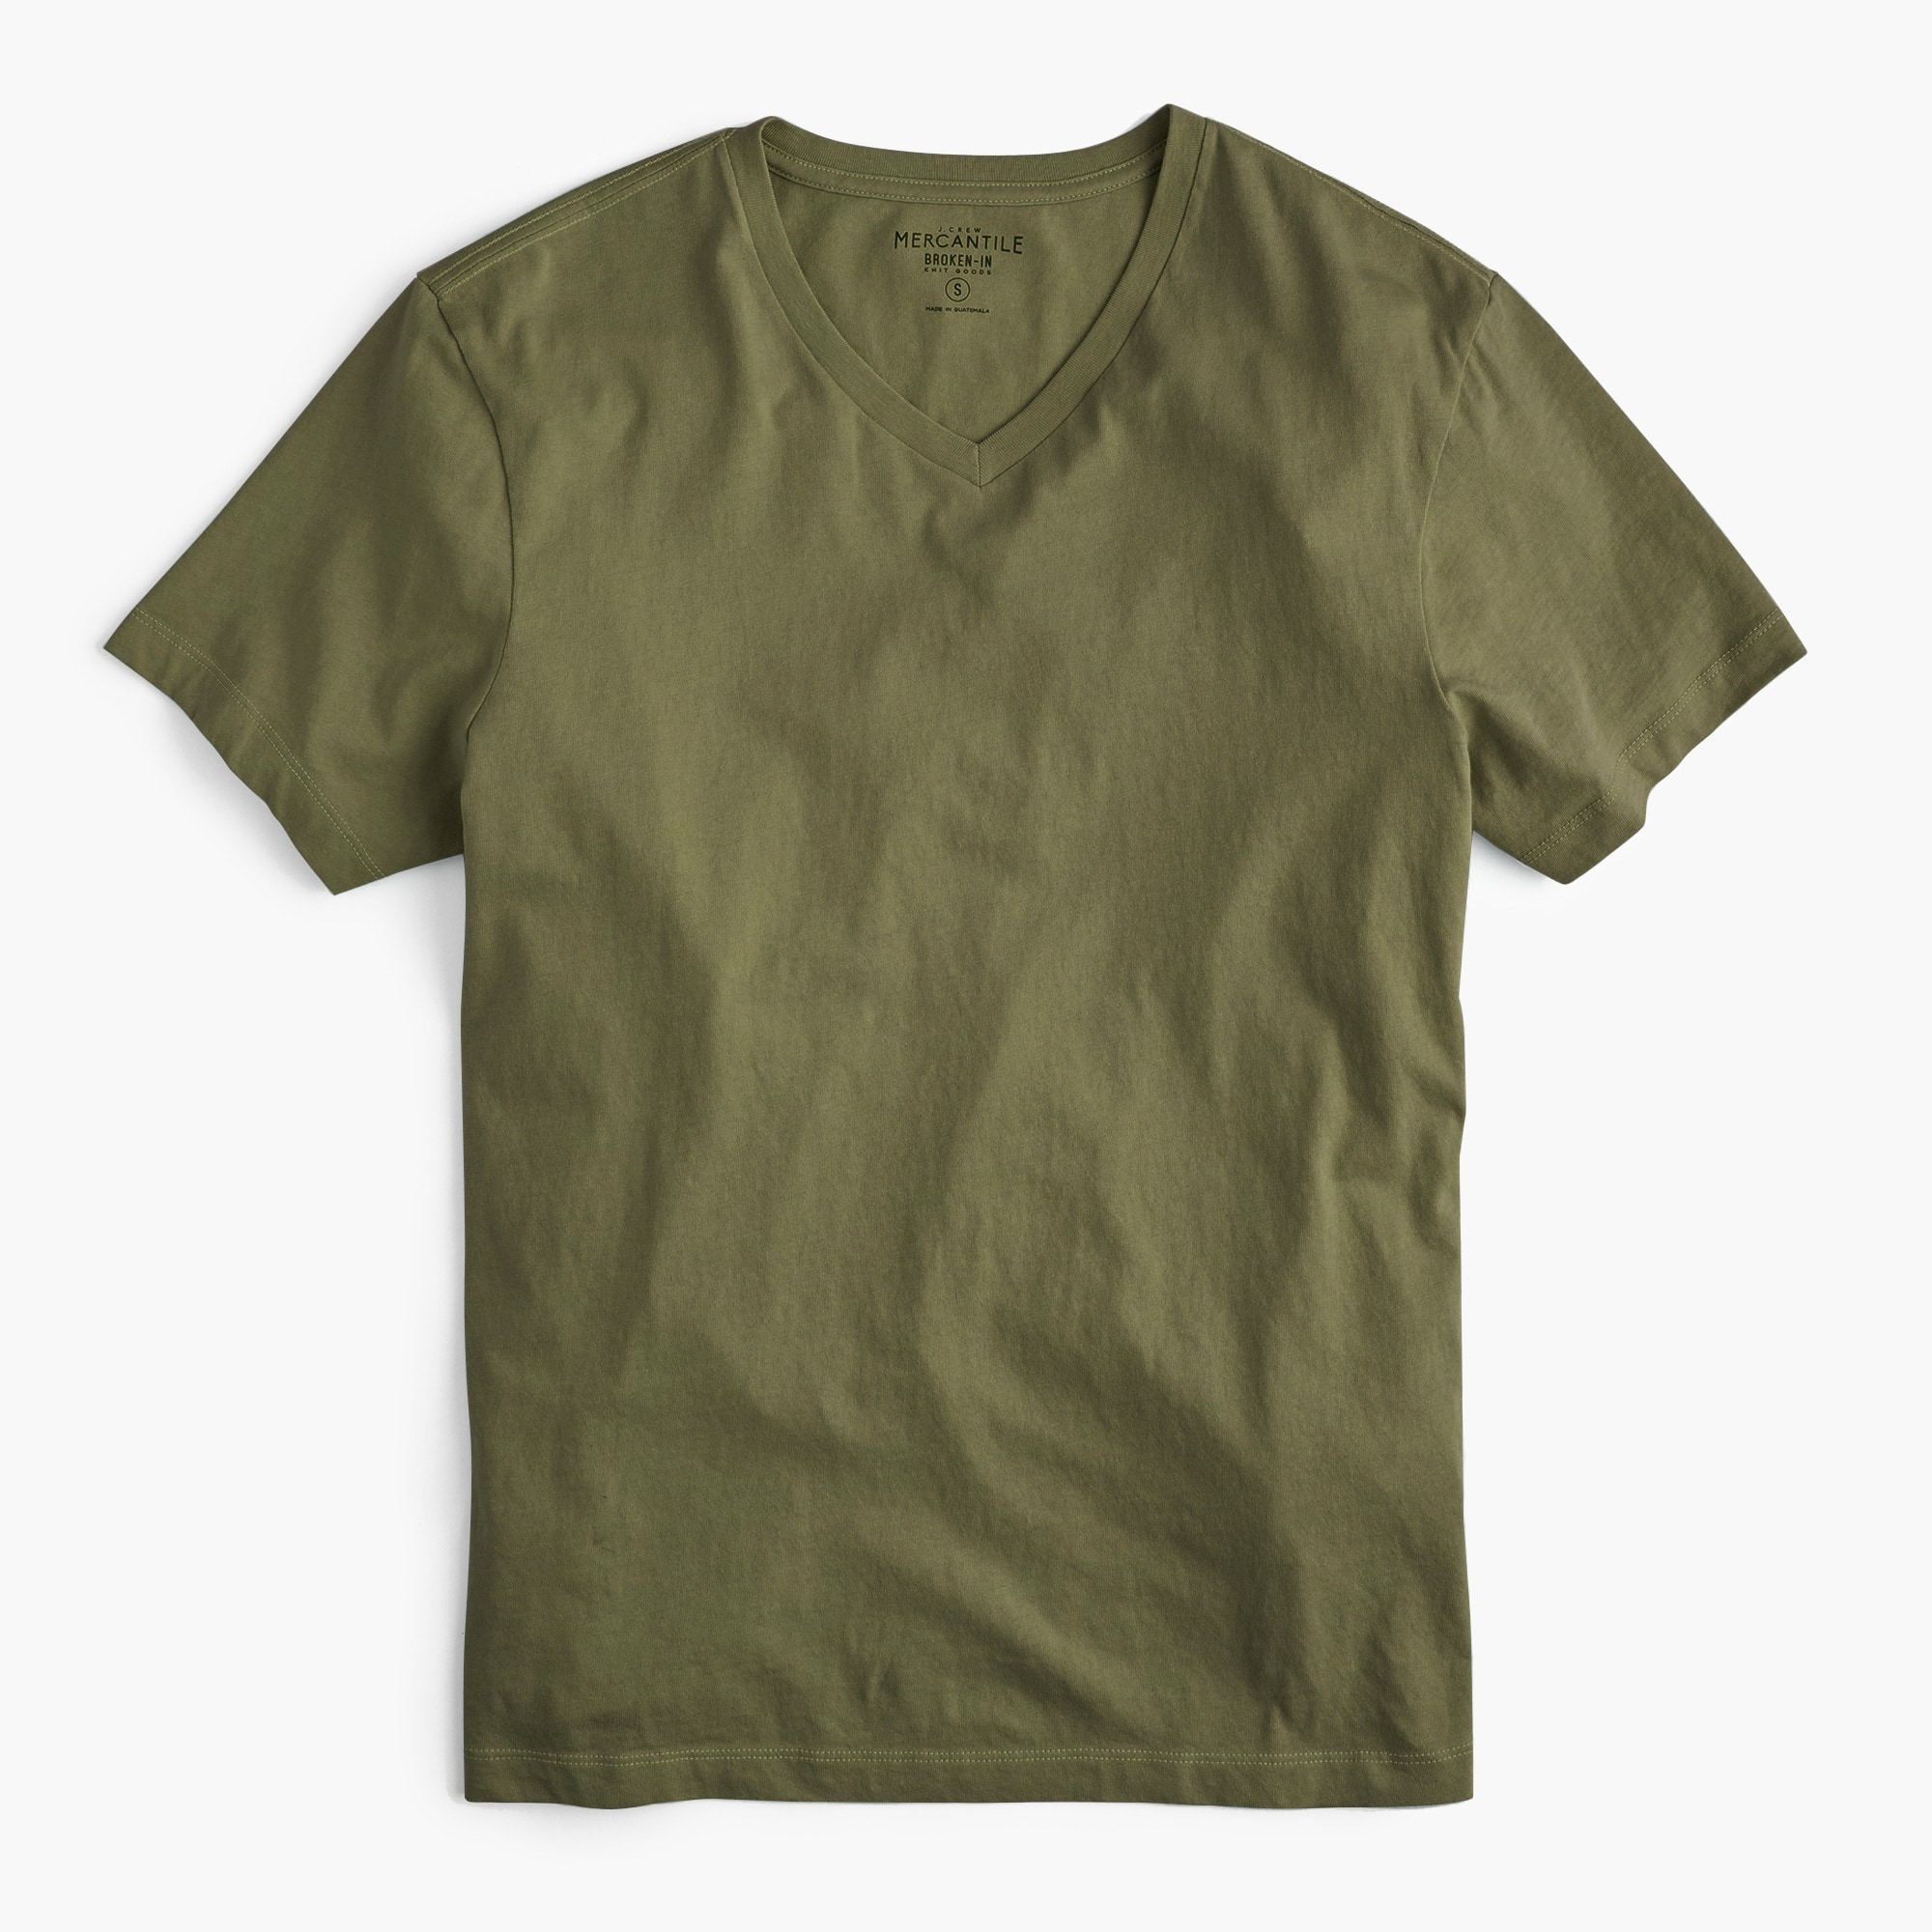 J.Crew Mercantile Broken-in V-neck T-shirt men t-shirts & polos c